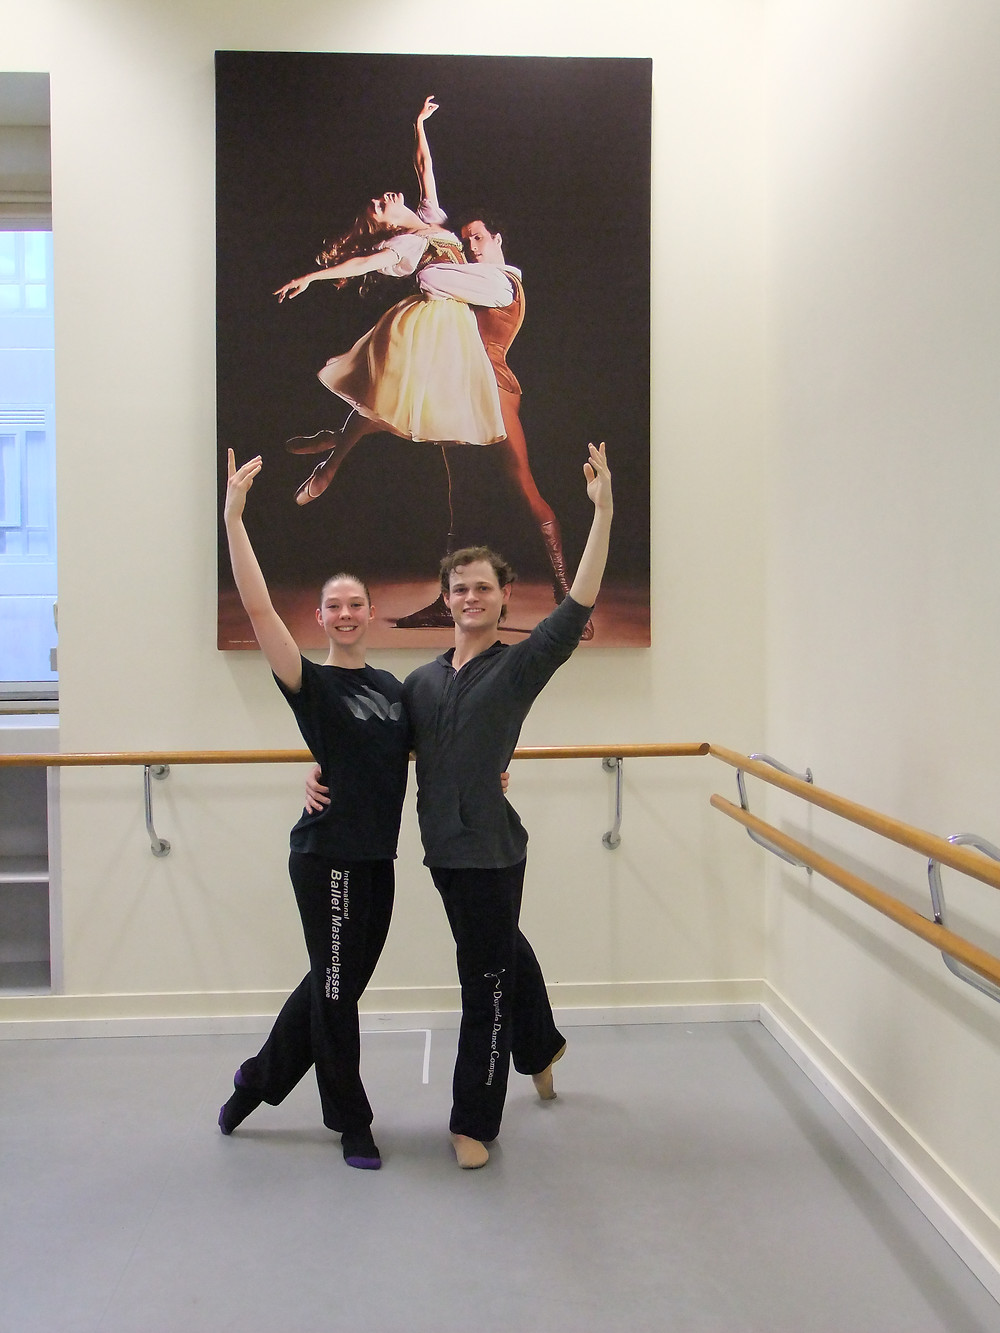 Tiffanie Hughes & Billy Laherty Studio 5 'The Australian Ballet'